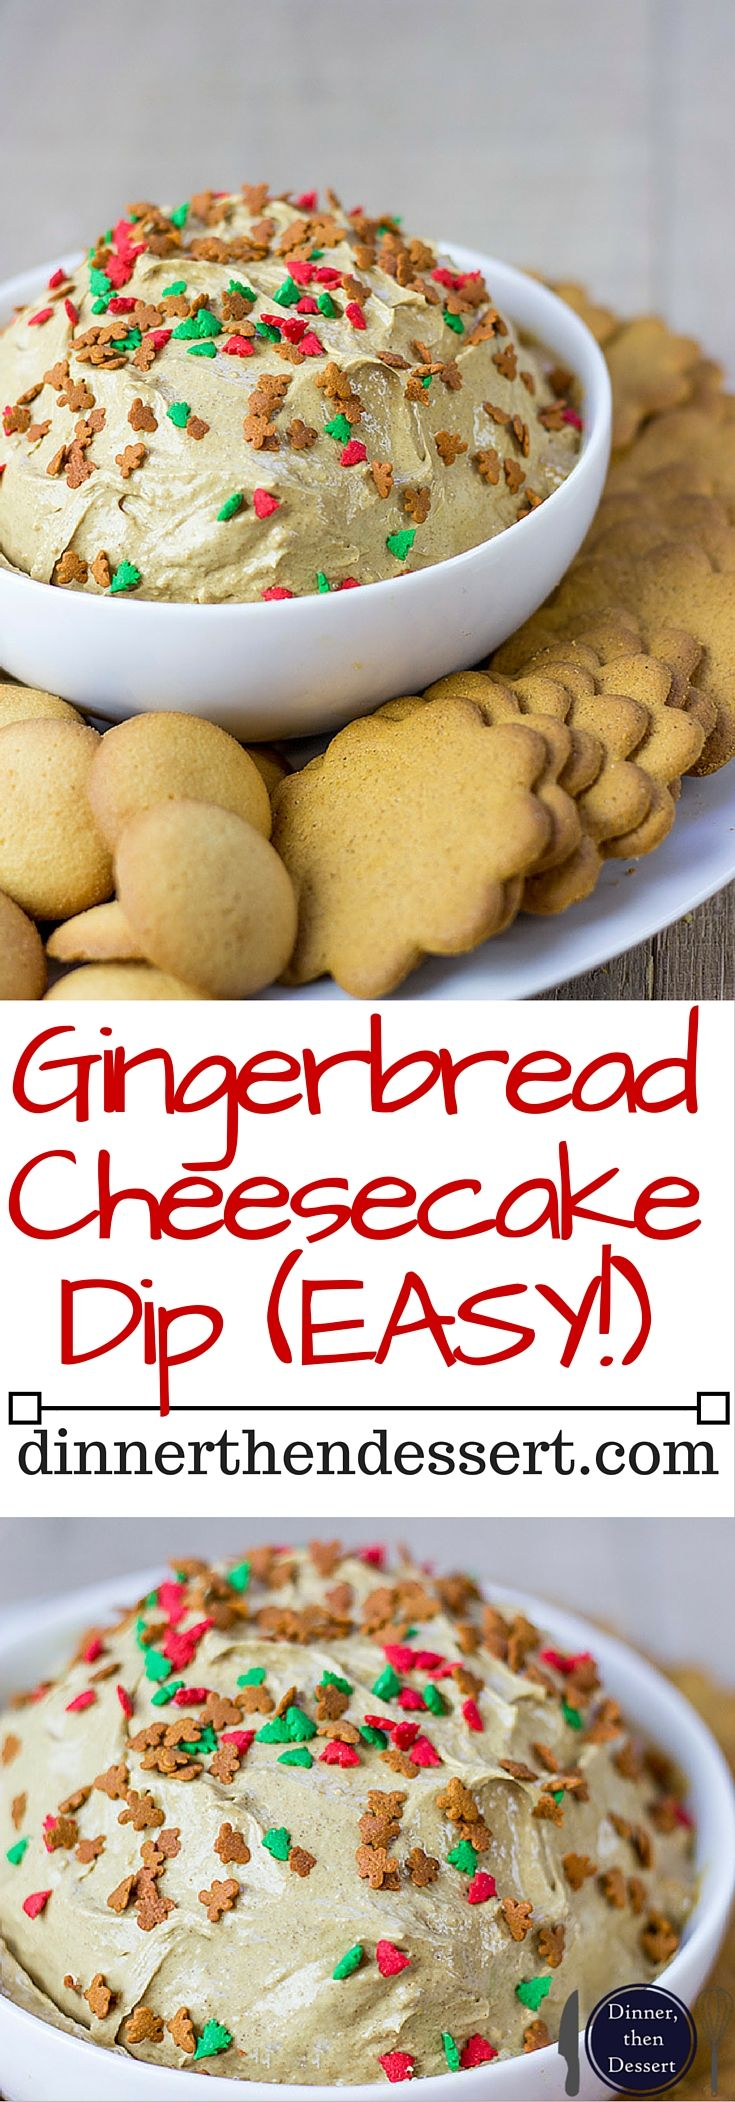 Creamy Gingerbread Cheesecake Dip perfect for a holiday crowd looking for a small bite instead of a heavy cheesecake! Perfect for a large crowd served with graham crackers or ginger snaps!